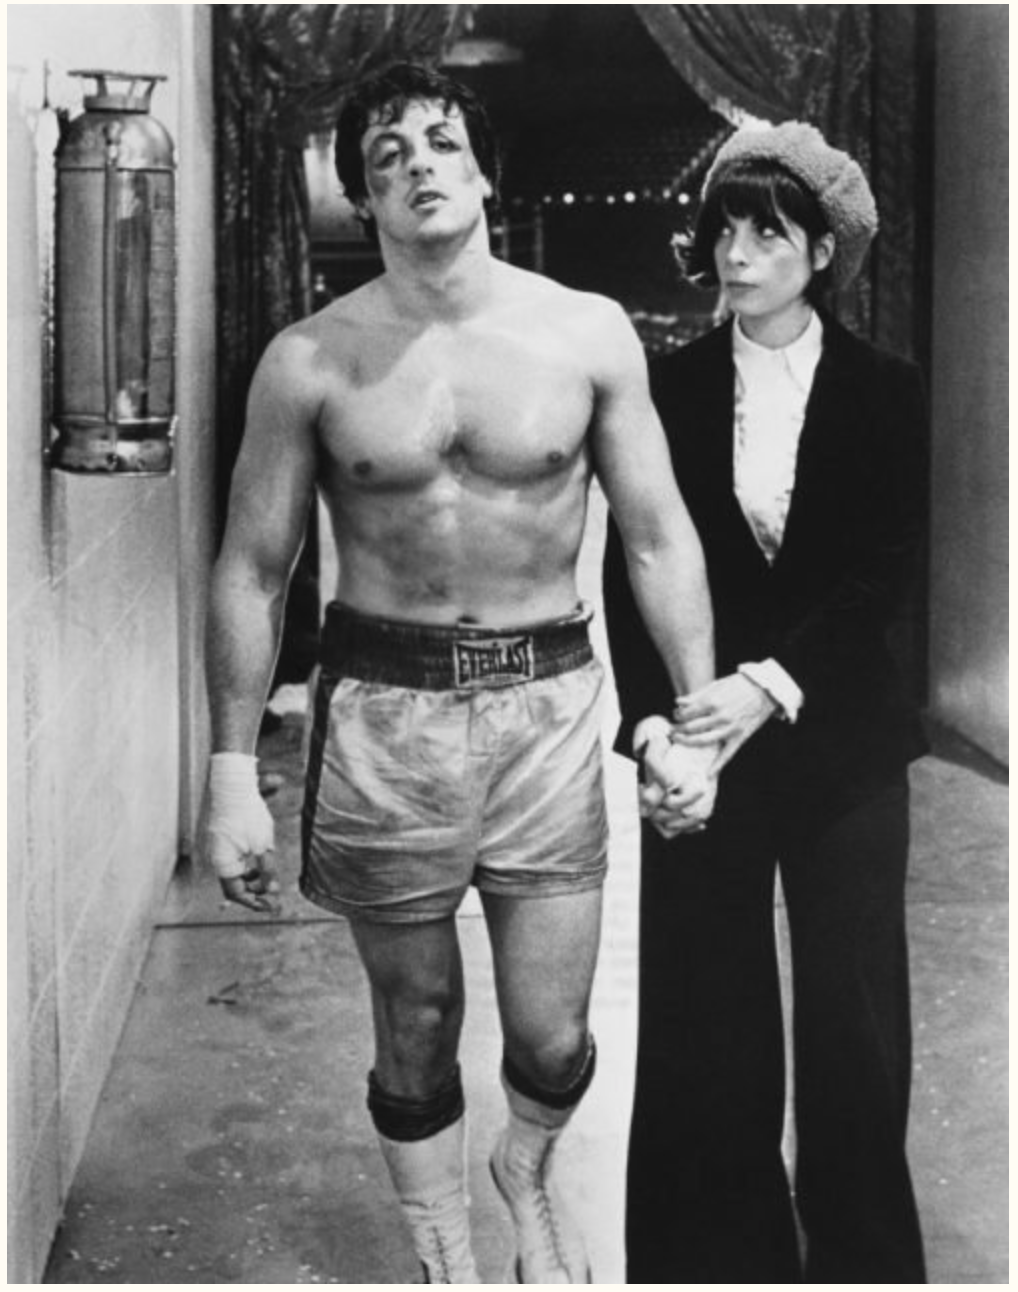 Sylvester Stallone as Rocky Balboa and Talia Shire as Adrian in Rocky. (Photo by John Springer Collection/CORBIS/Corbis via Getty Images)